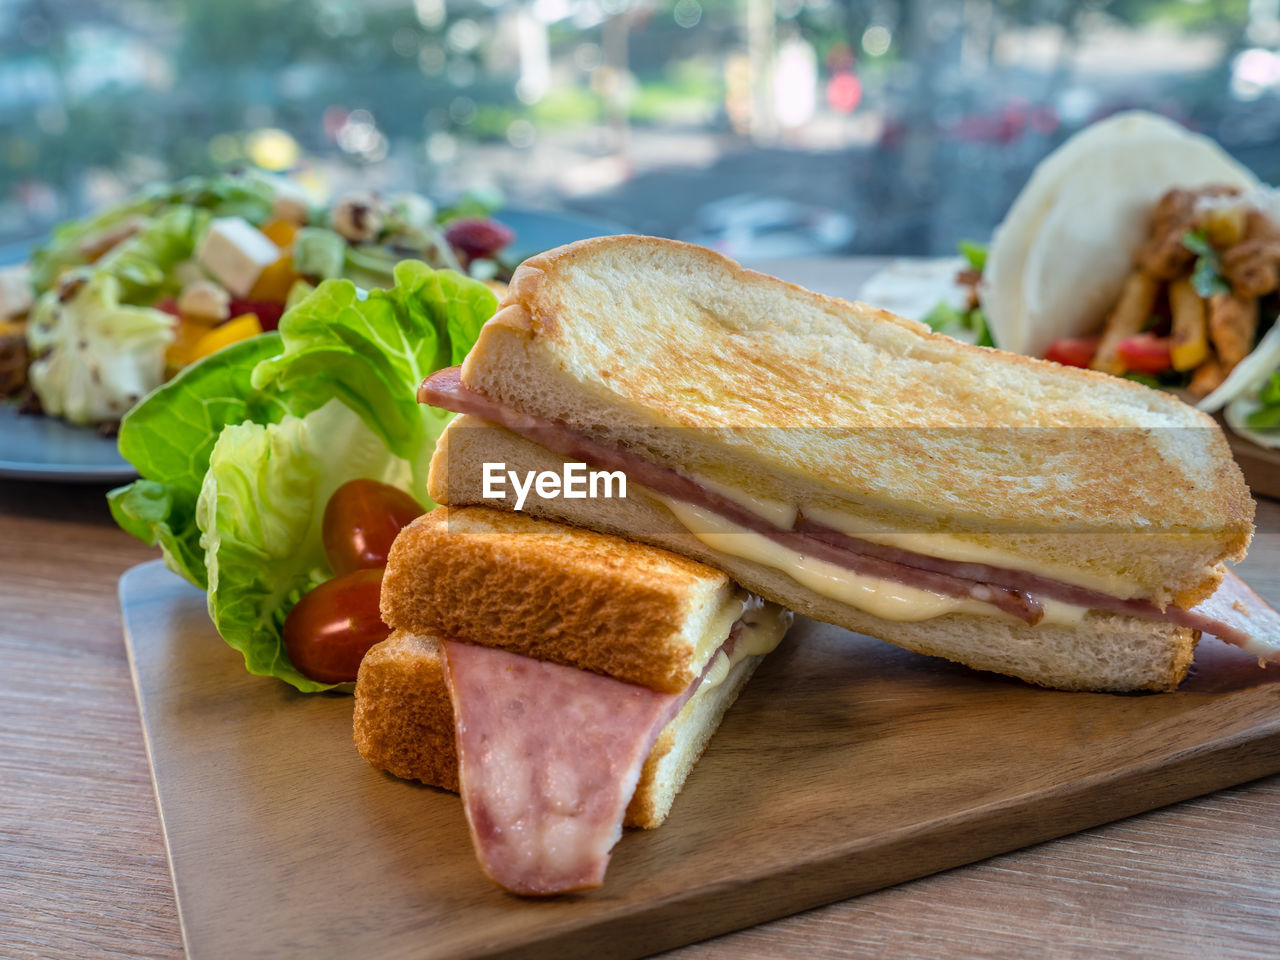 food and drink, food, bread, freshness, sandwich, ready-to-eat, meat, close-up, vegetable, focus on foreground, healthy eating, table, indoors, still life, wellbeing, no people, processed meat, ham, serving size, slice, snack, breakfast, temptation